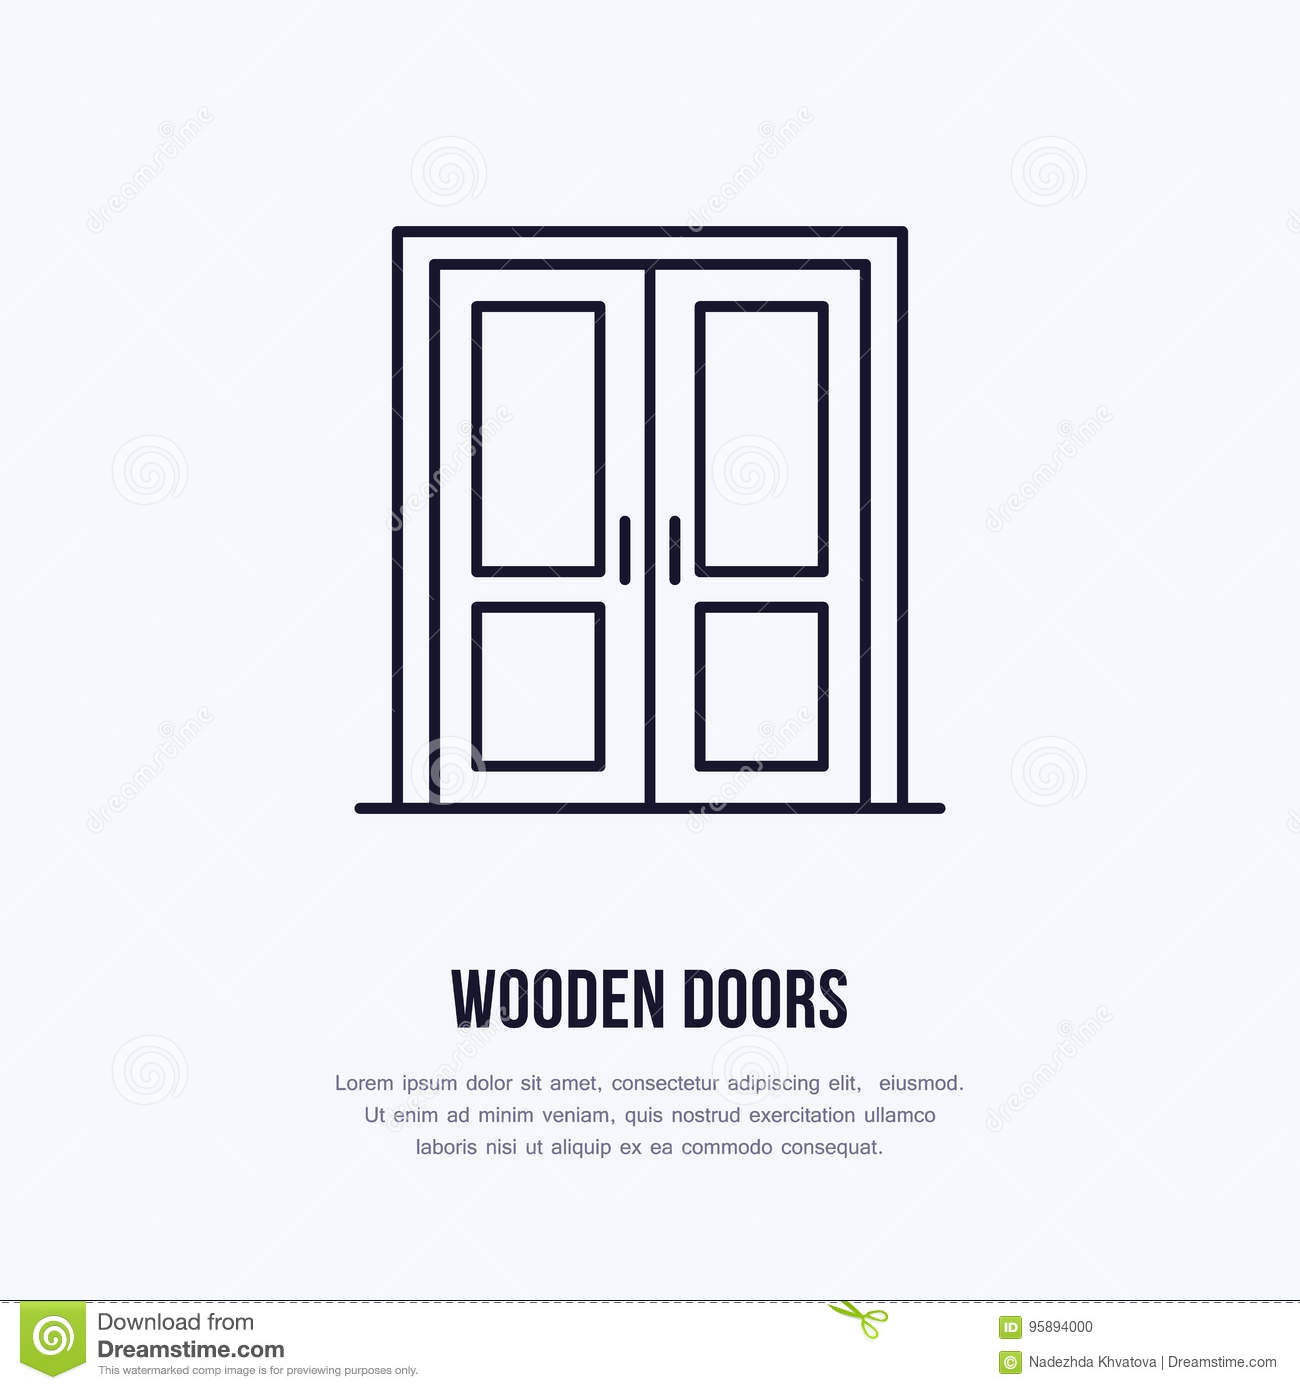 Ut interior design perfect wooden doors logo repair flat line icon interior design thin linear Home decor stores utah county